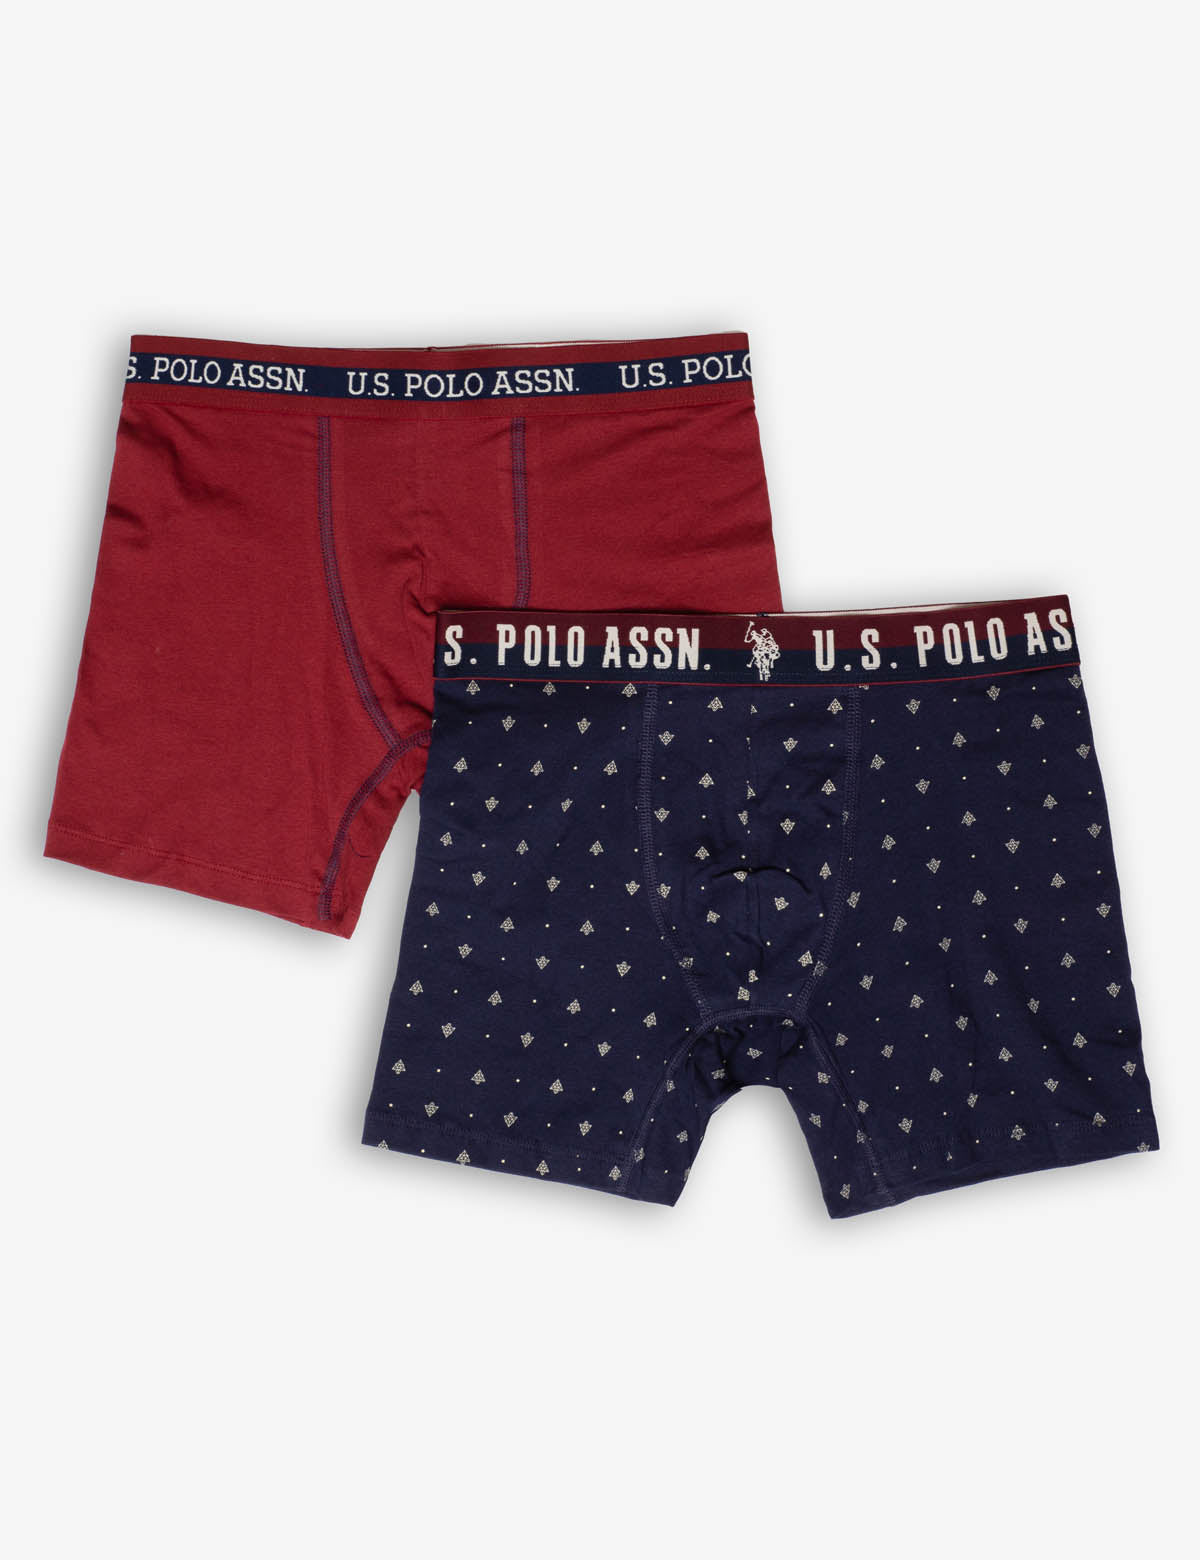 2 PACK STRETCH BOXER BRIEFS - U.S. Polo Assn.